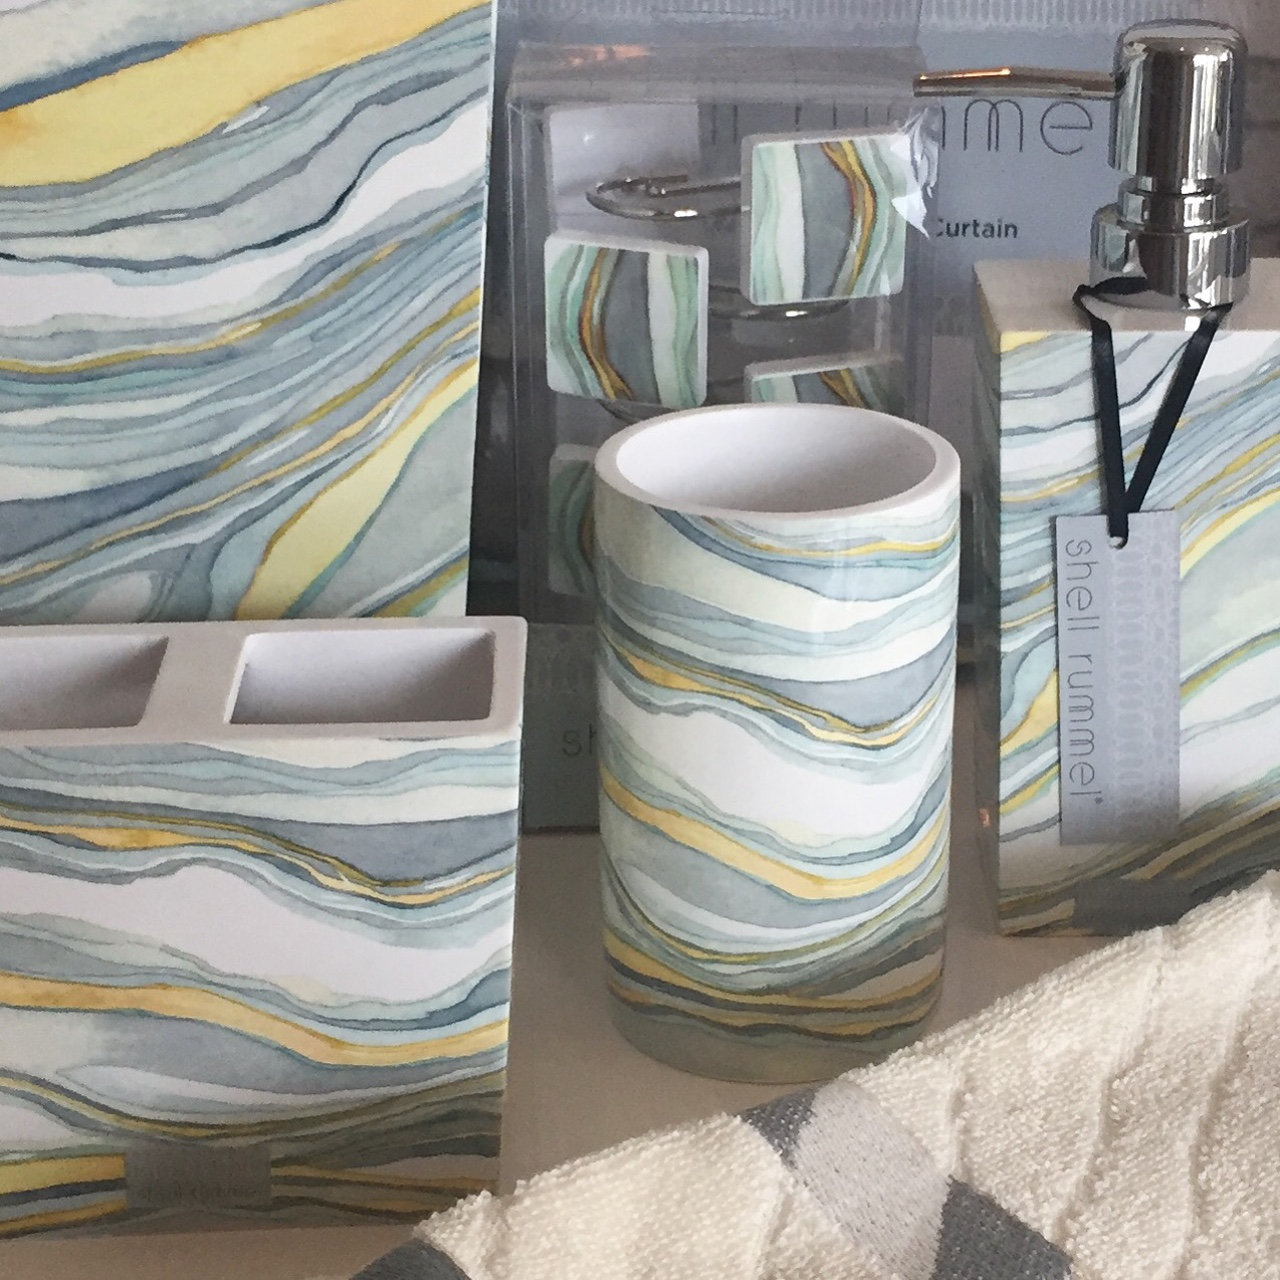 Sandstone collection offers a full range of bathroom textiles and accessories in a modern marble design.